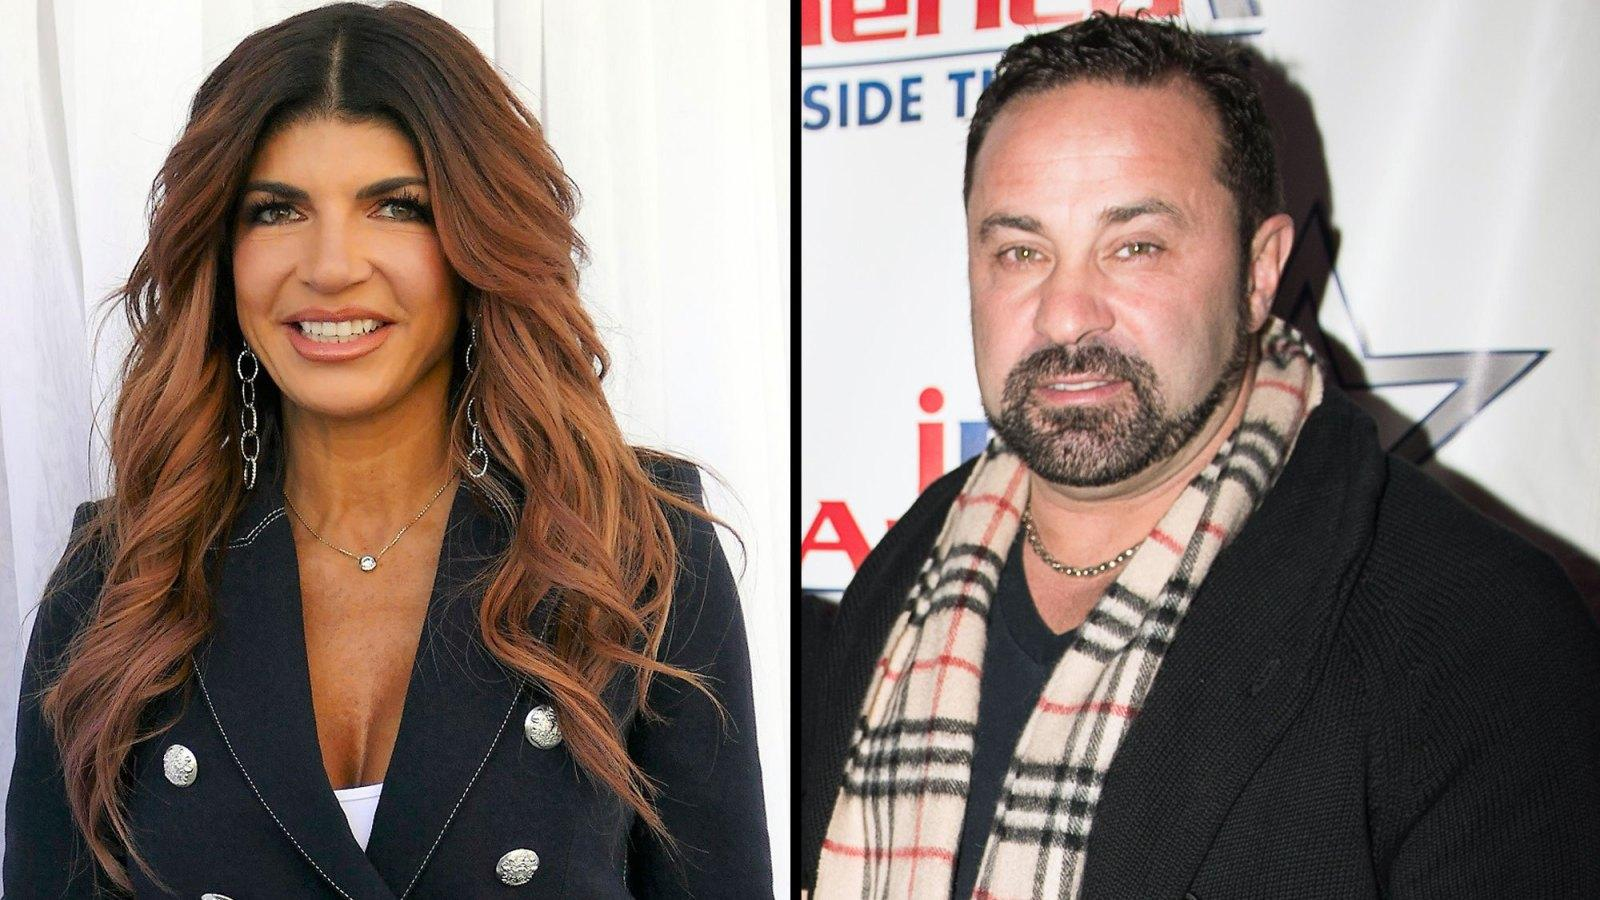 Teresa Giudice Not Wearing Her Wedding Ring And Having Fun On Vacation While Husband Joe Risks Deportation - Here's Why!